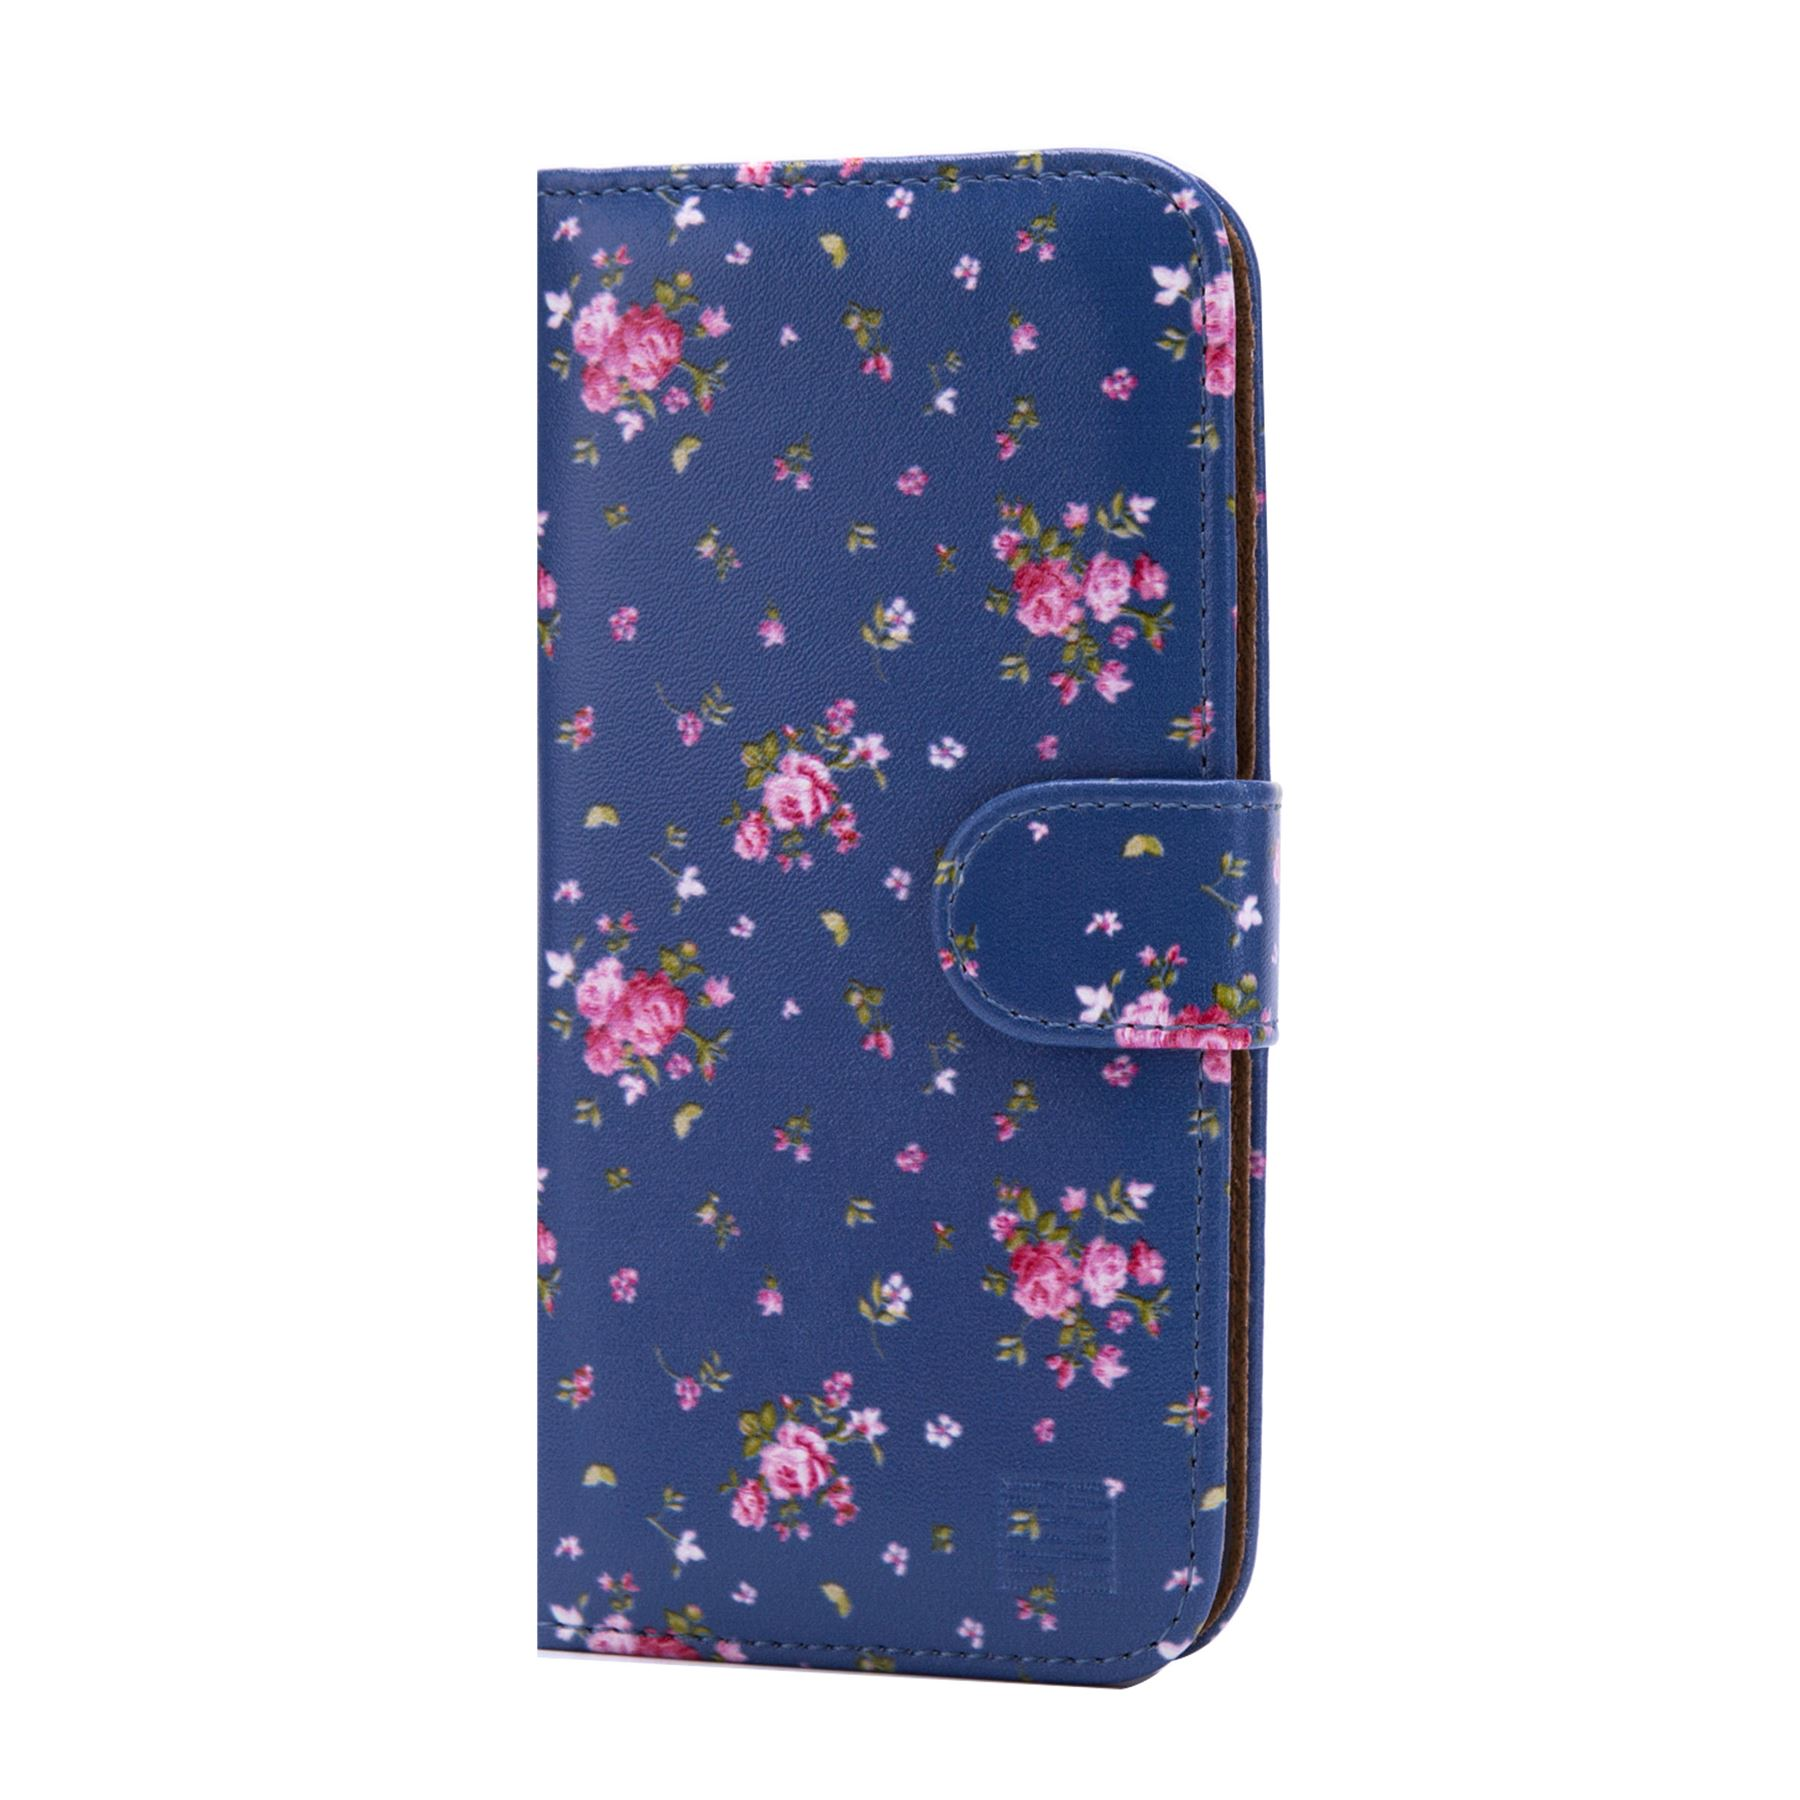 PU-Leather-Floral-Design-Book-Wallet-Case-Cover-For-Google-Pixel thumbnail 44